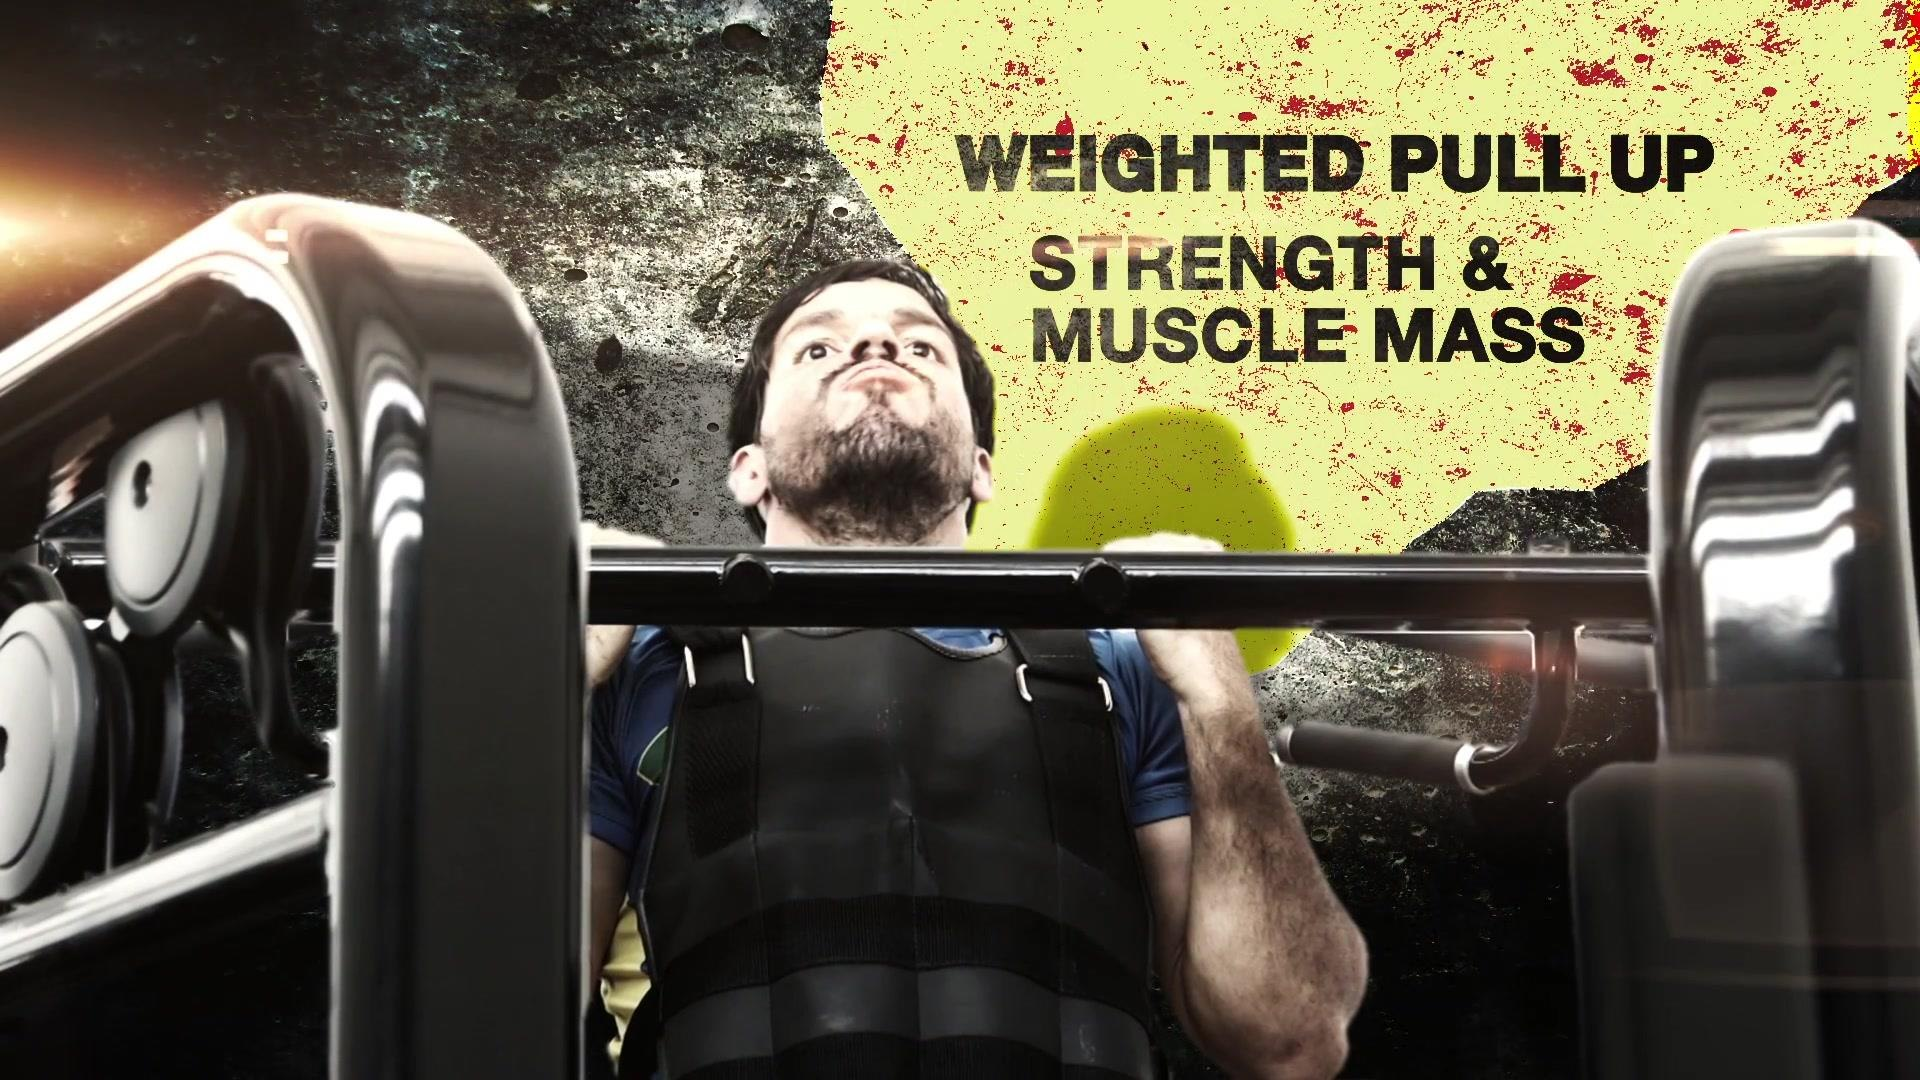 Brazil Coach's Top Gym Tips | Weighted Pull Ups